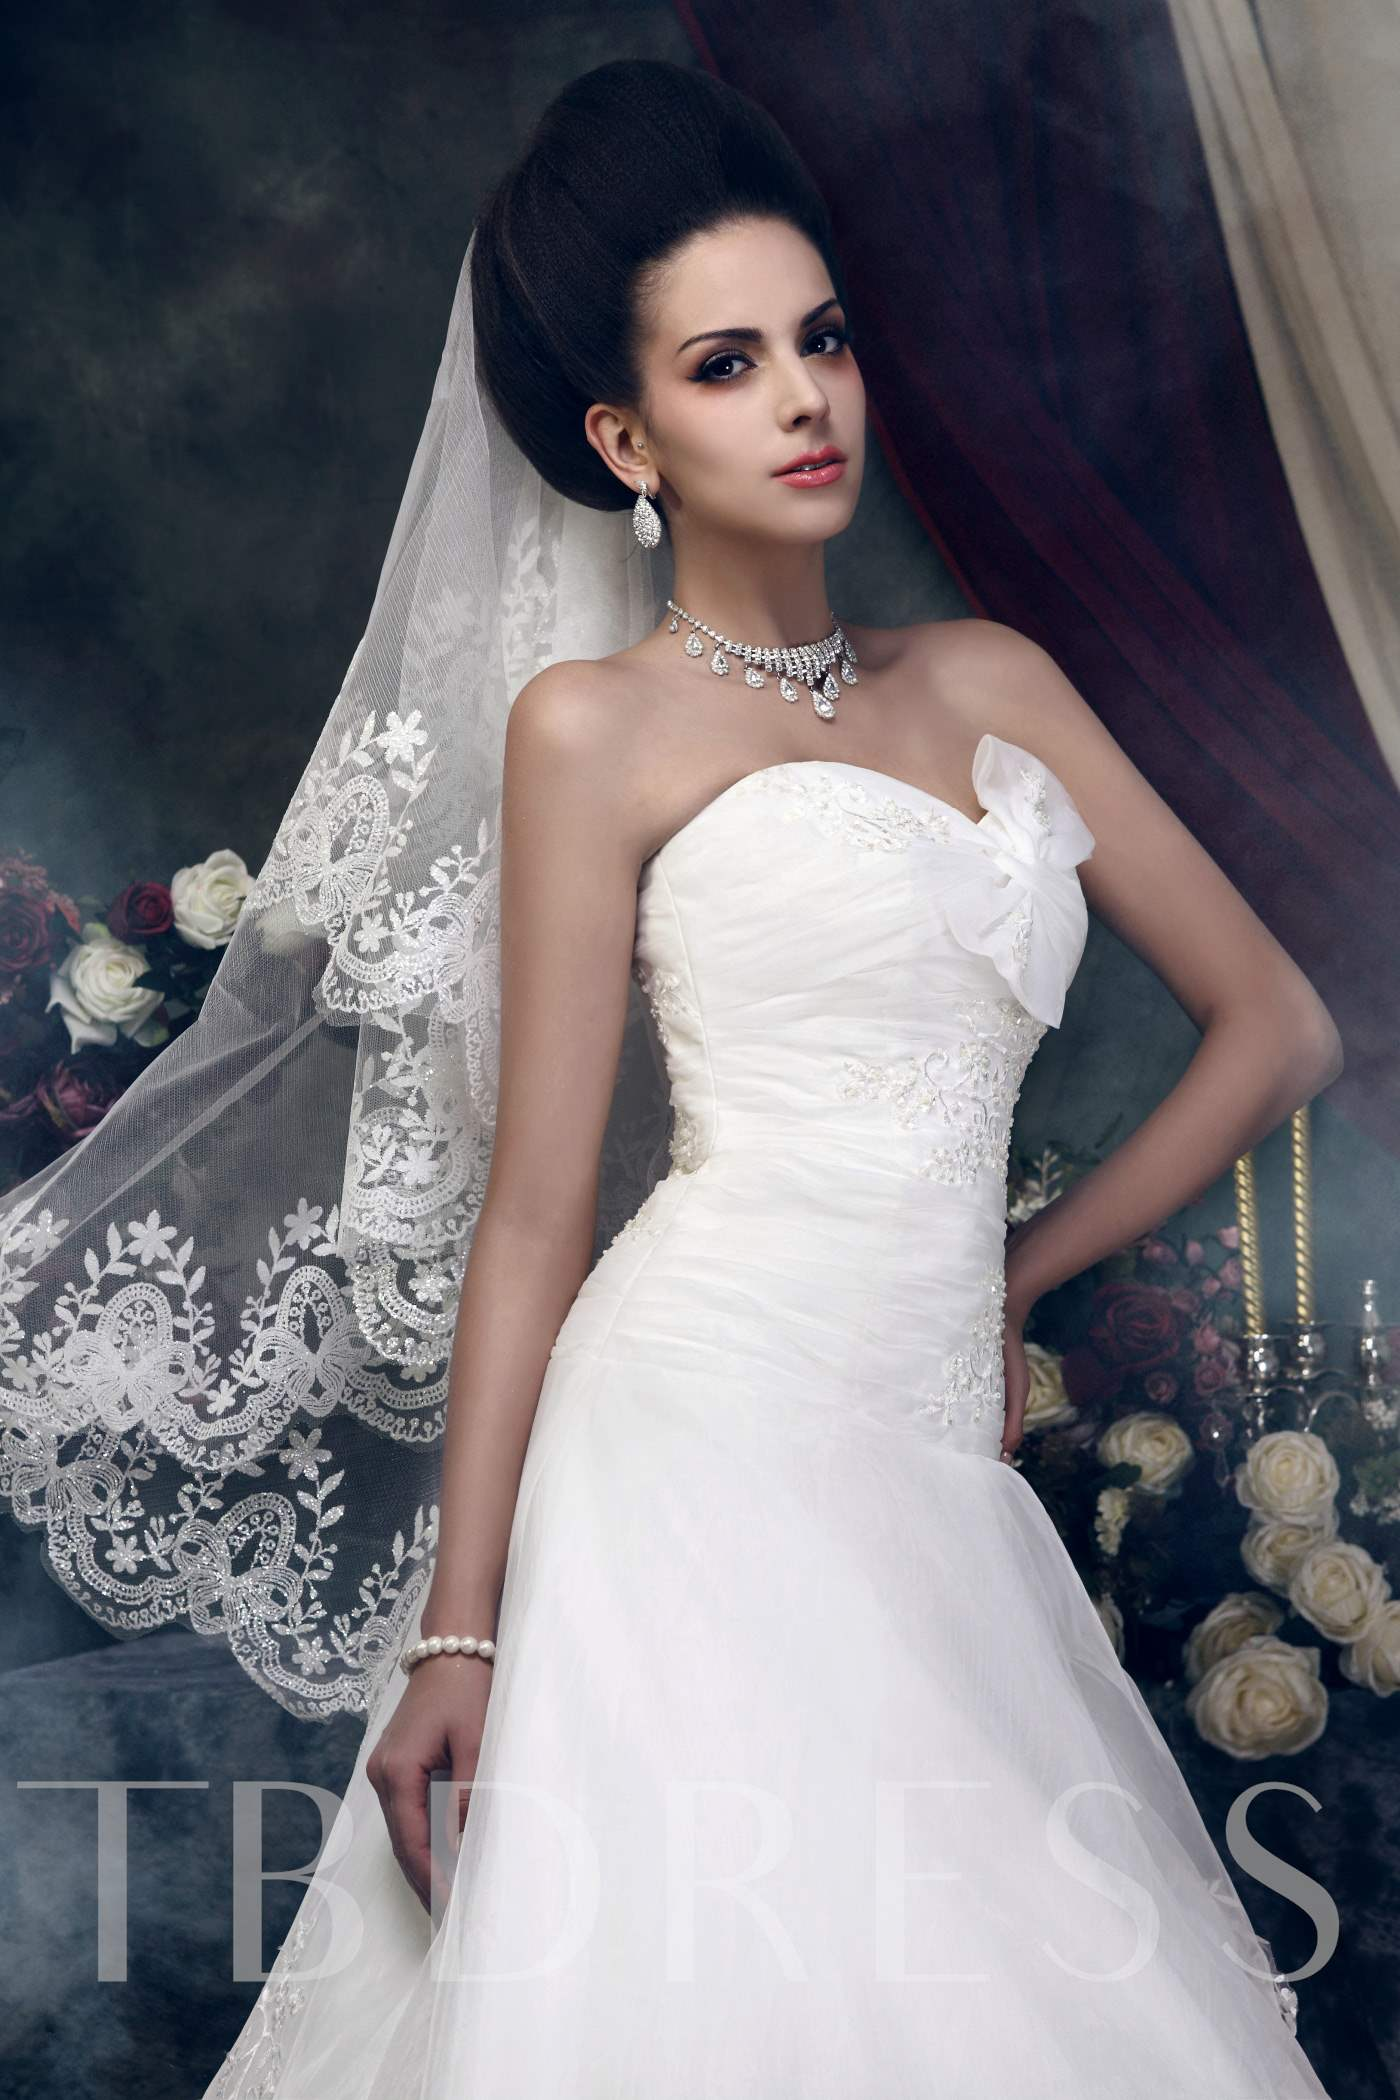 1-Layer Fingertip Wedding Bridal Veil with Floral Edge